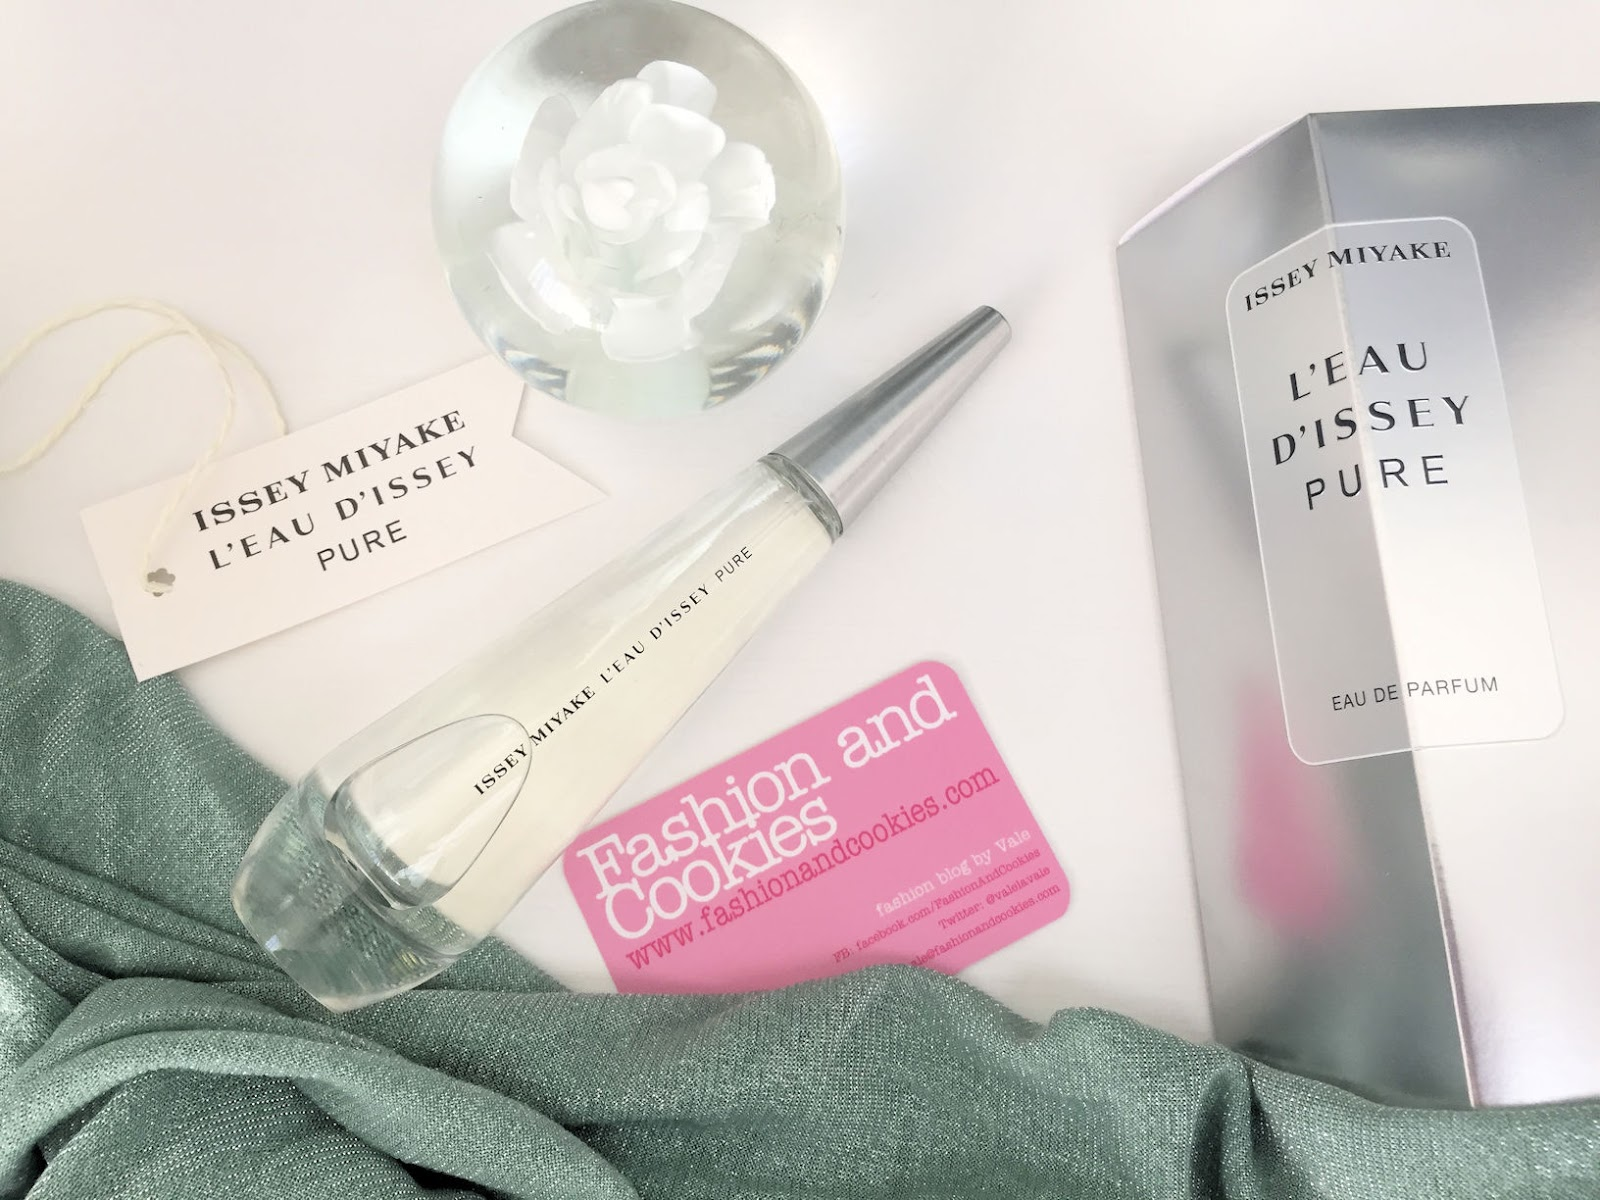 L'EAU D'ISSEY PURE EAU DE PARFUM by ISSEY MIYAKE on Fashion and Cookies beauty blog, beauty blogger